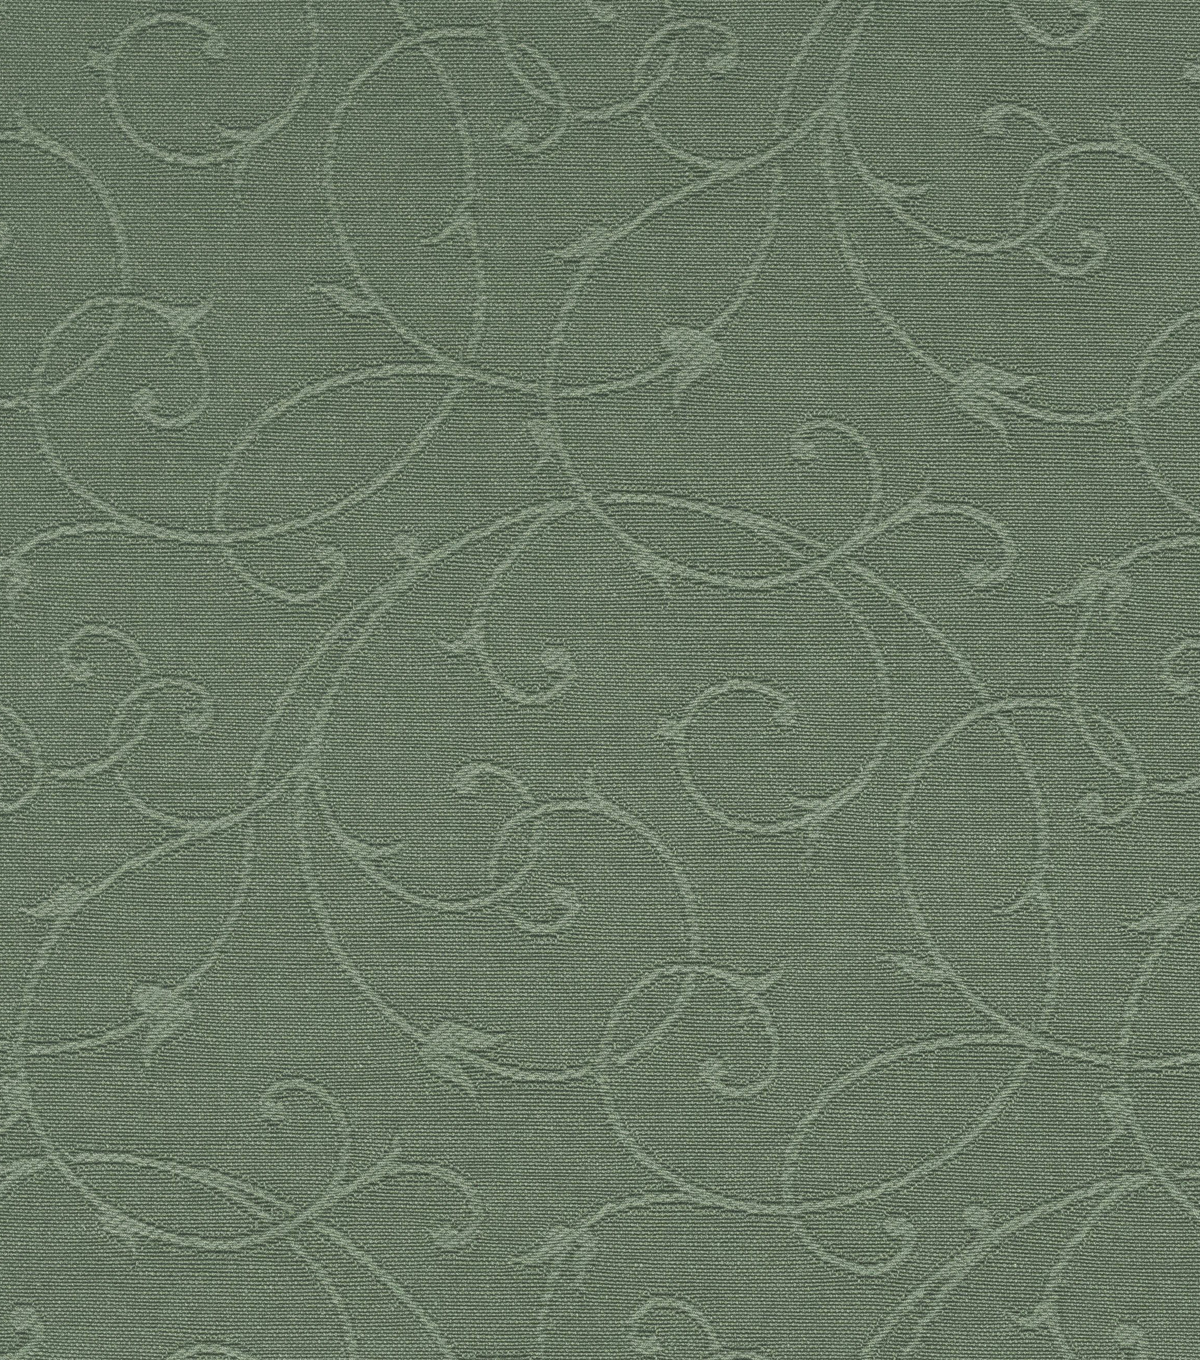 Home Decor 8\u0022x8\u0022 Fabric Swatch-Crestmont Madison-Meadow